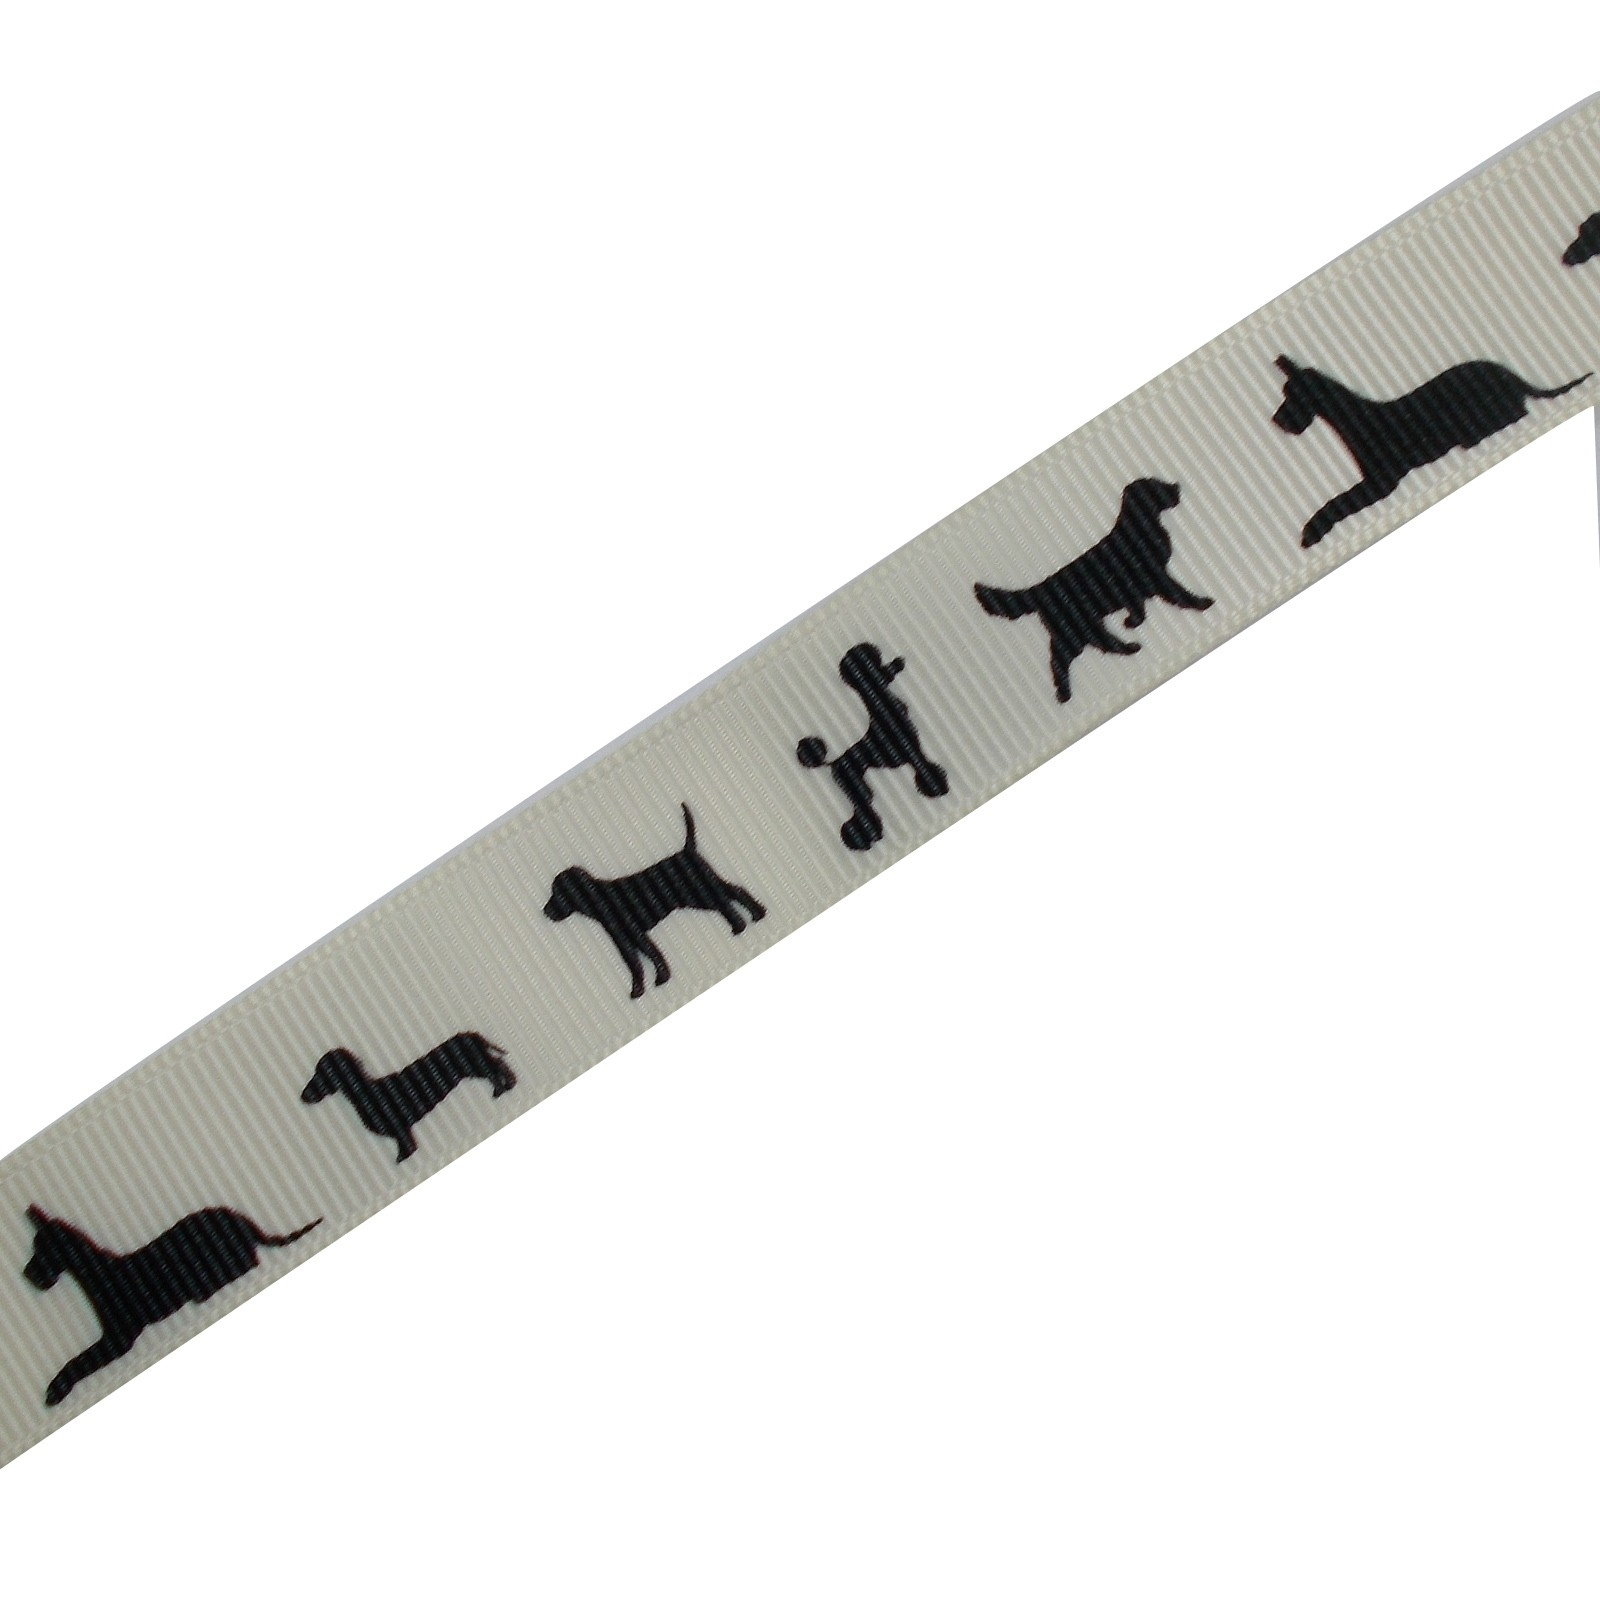 Dog Black Silhouette Cream Ribbon 16mm wide 1 metre length